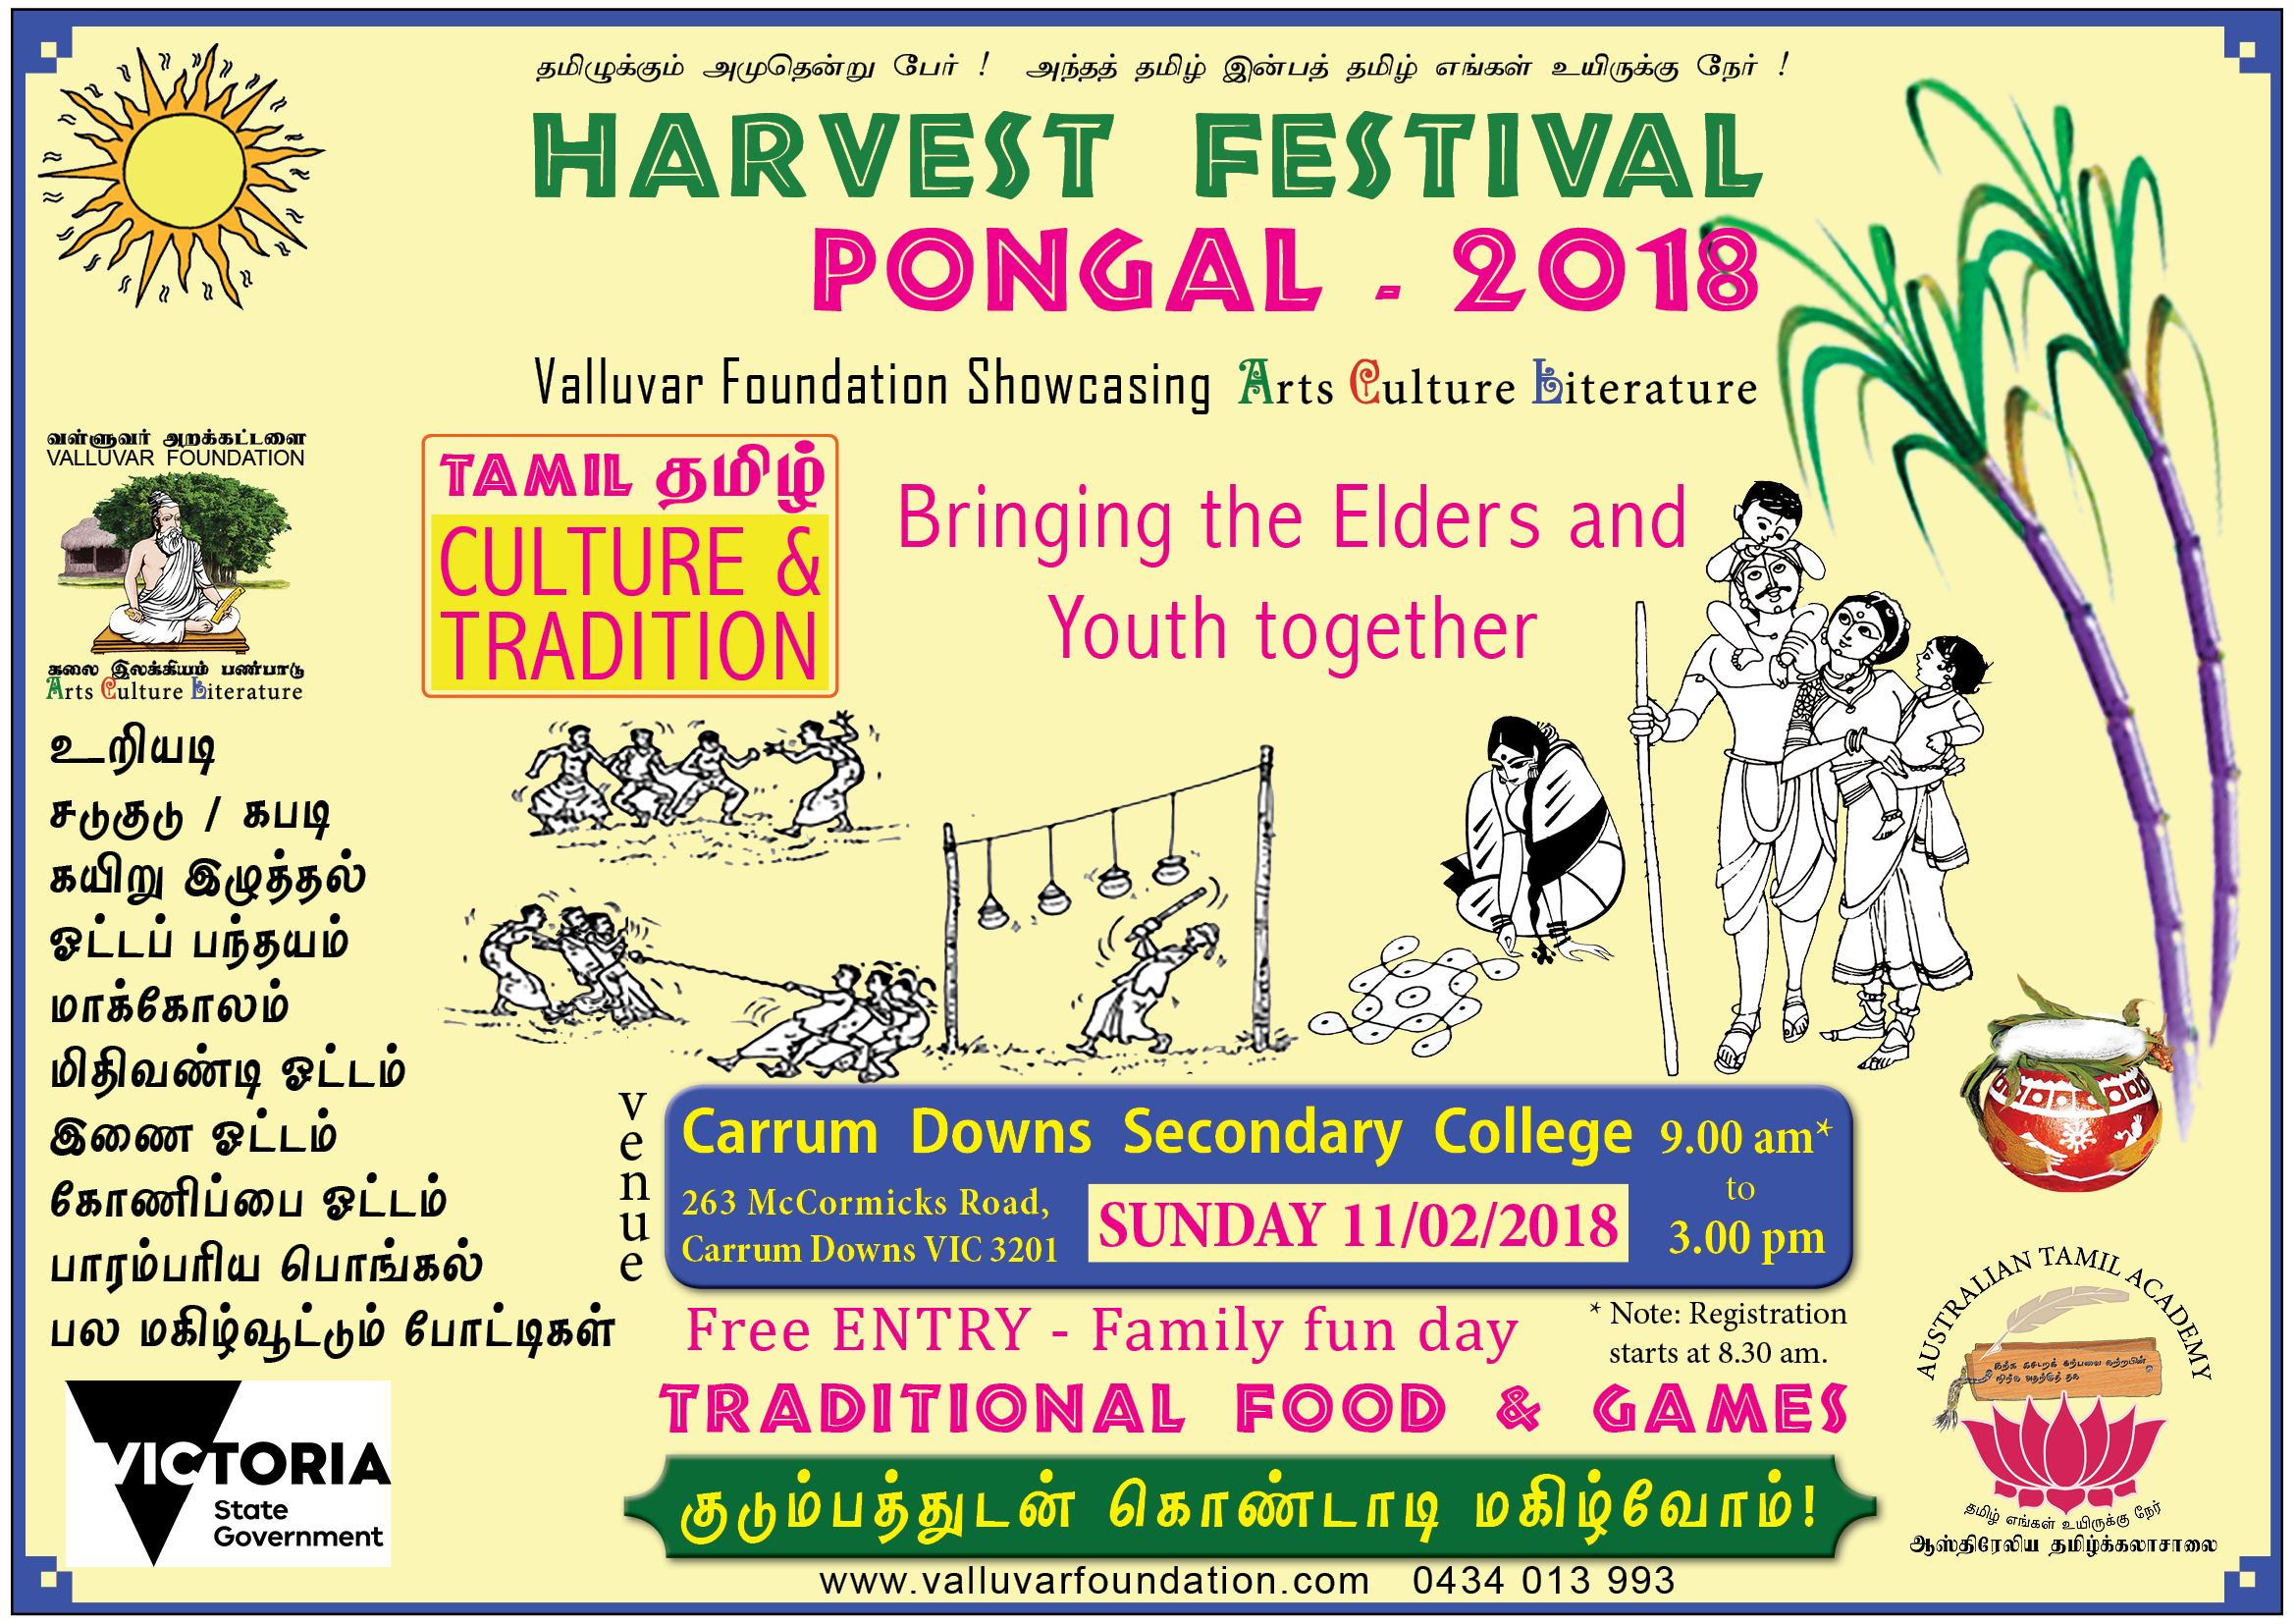 2018 Harvest Festival Pongal Invitation